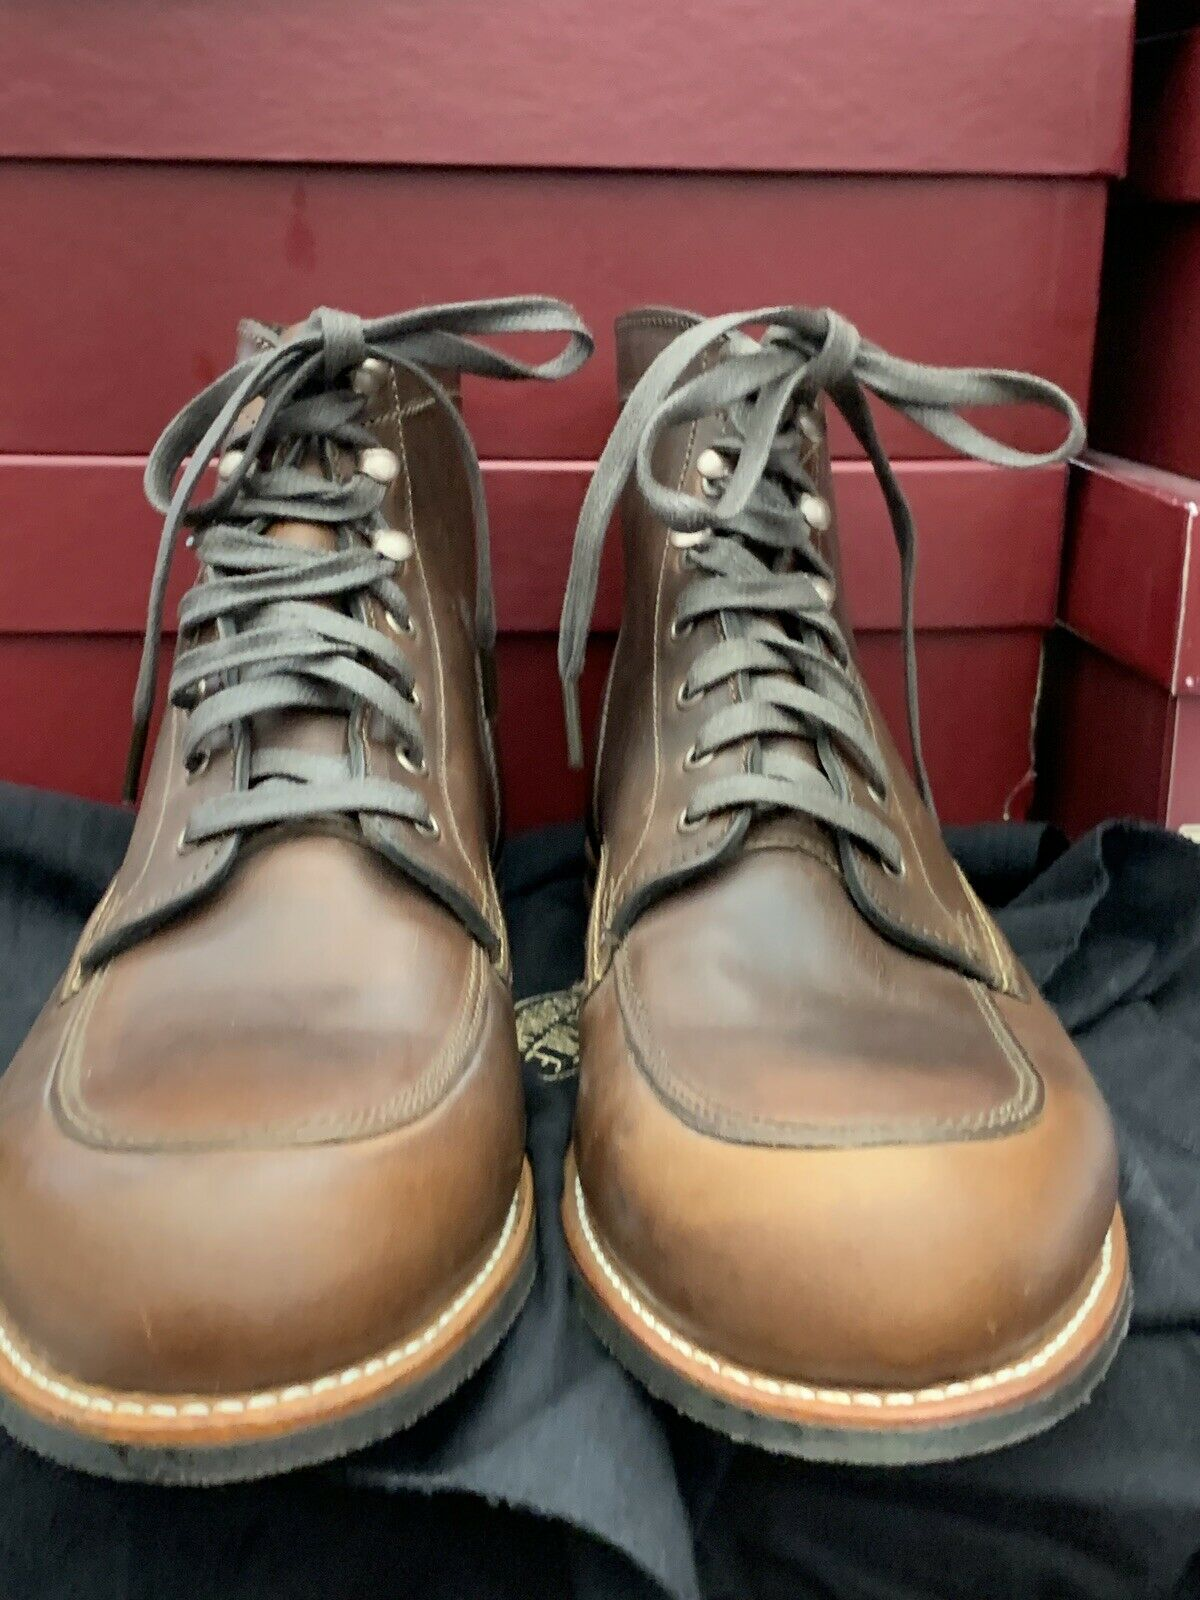 wolverine 1000 mile Courtland boot